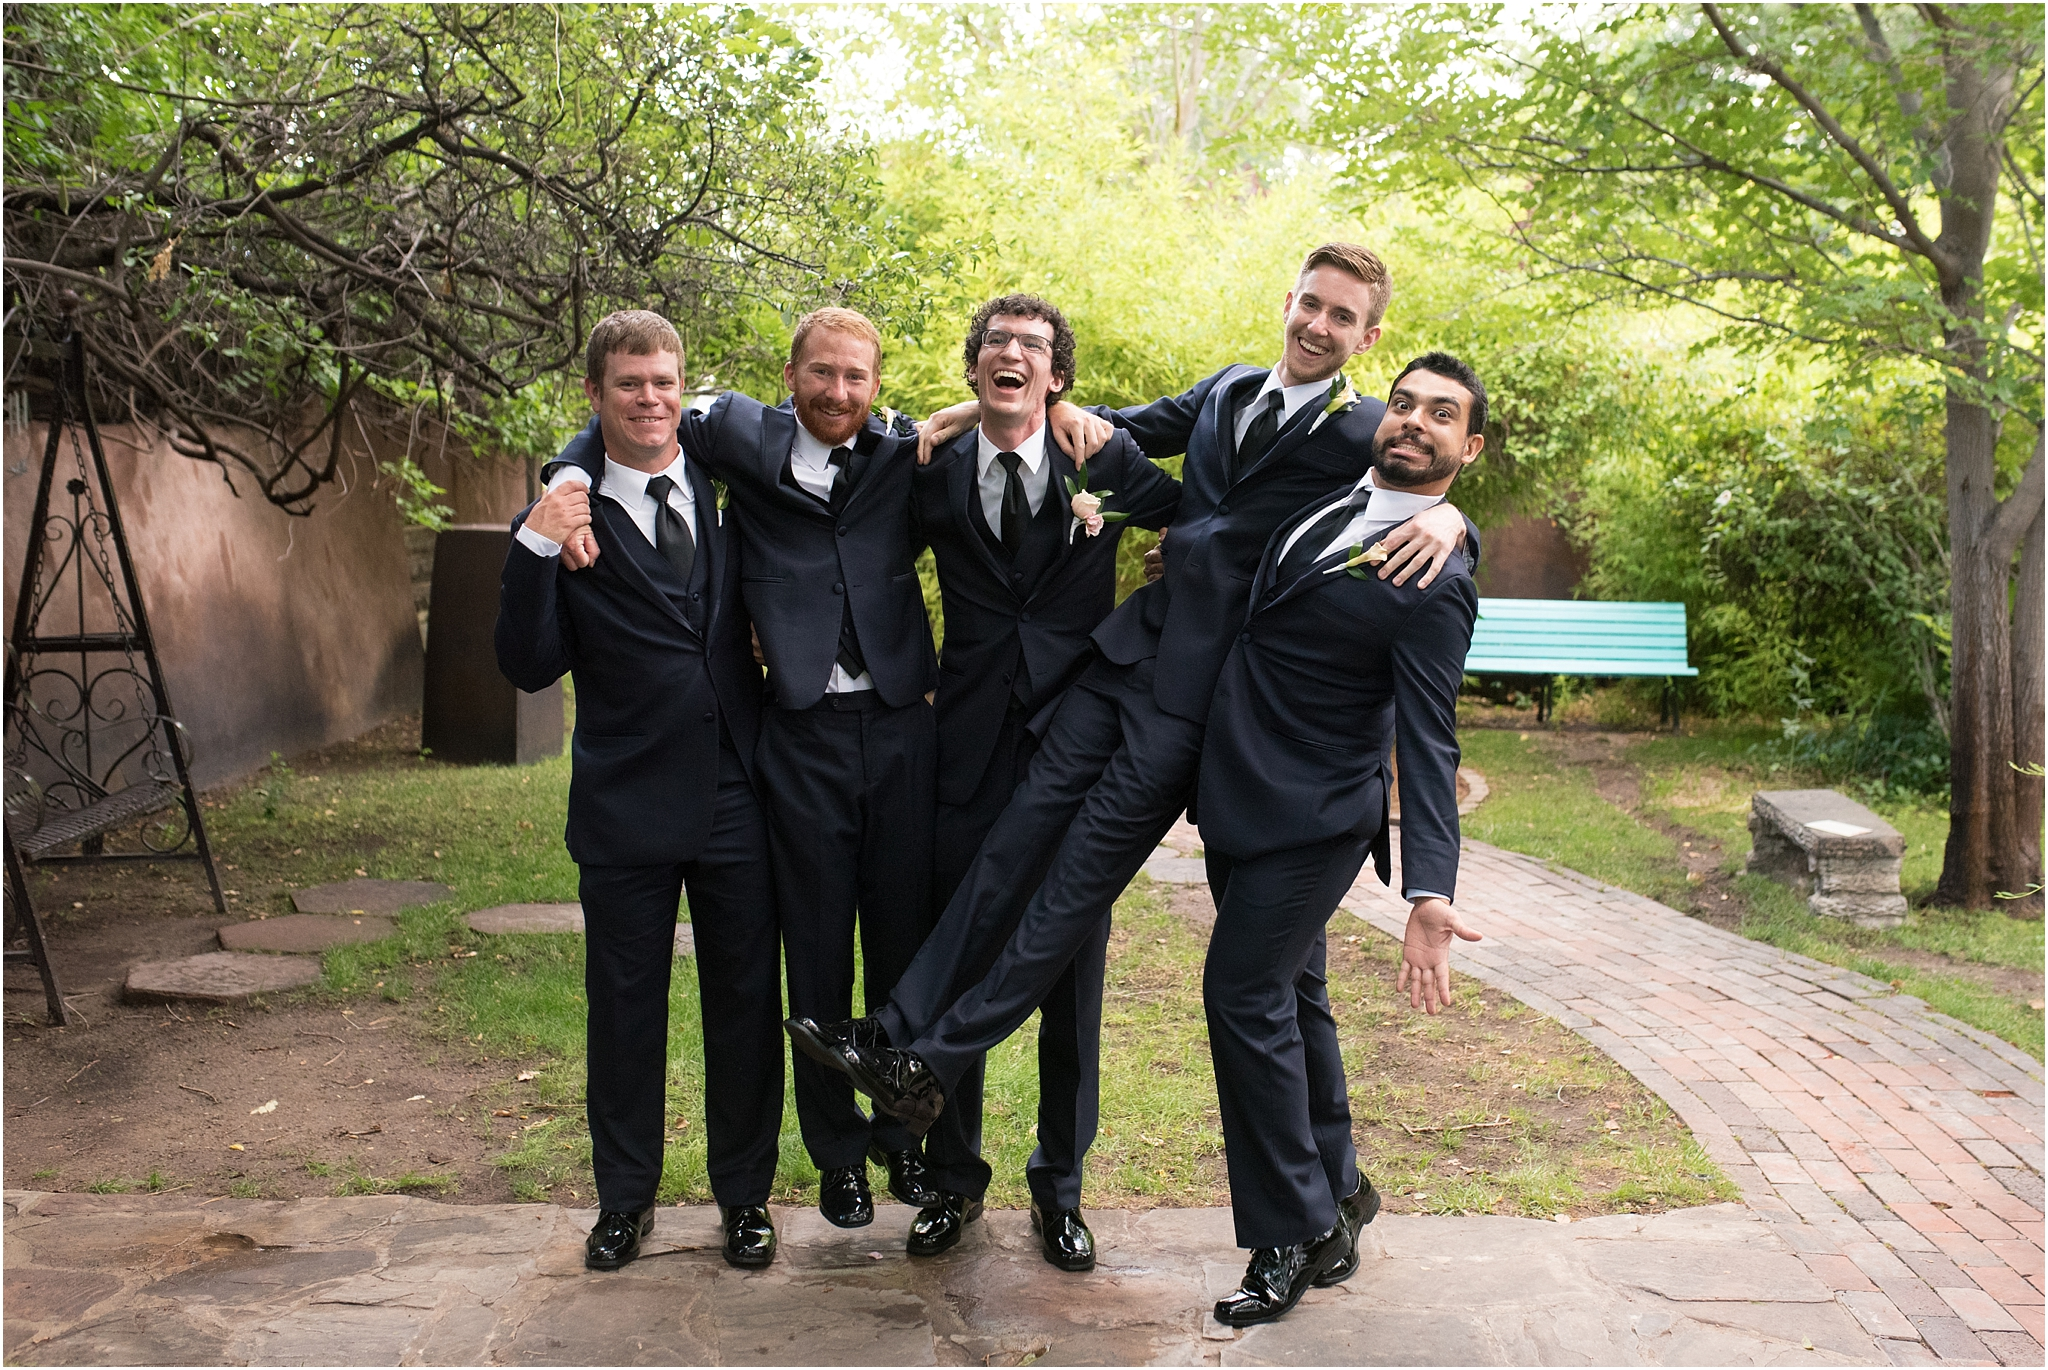 kayla kitts photography - new mexico wedding photographer - albuquerque botanic gardens - hotel albuquerque-casa de suenos_0229.jpg